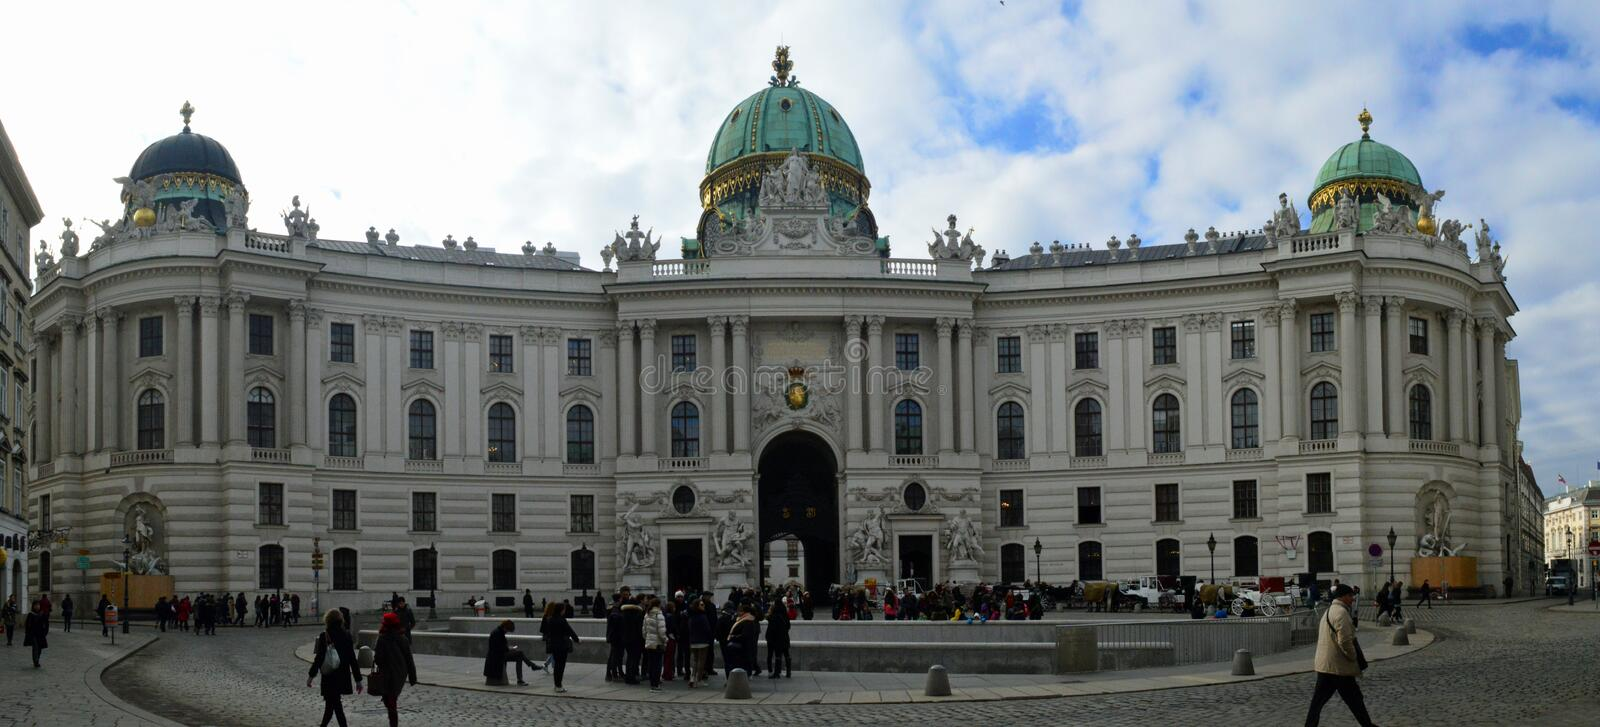 Panoramic view of Hofburg Palace royalty free stock photos